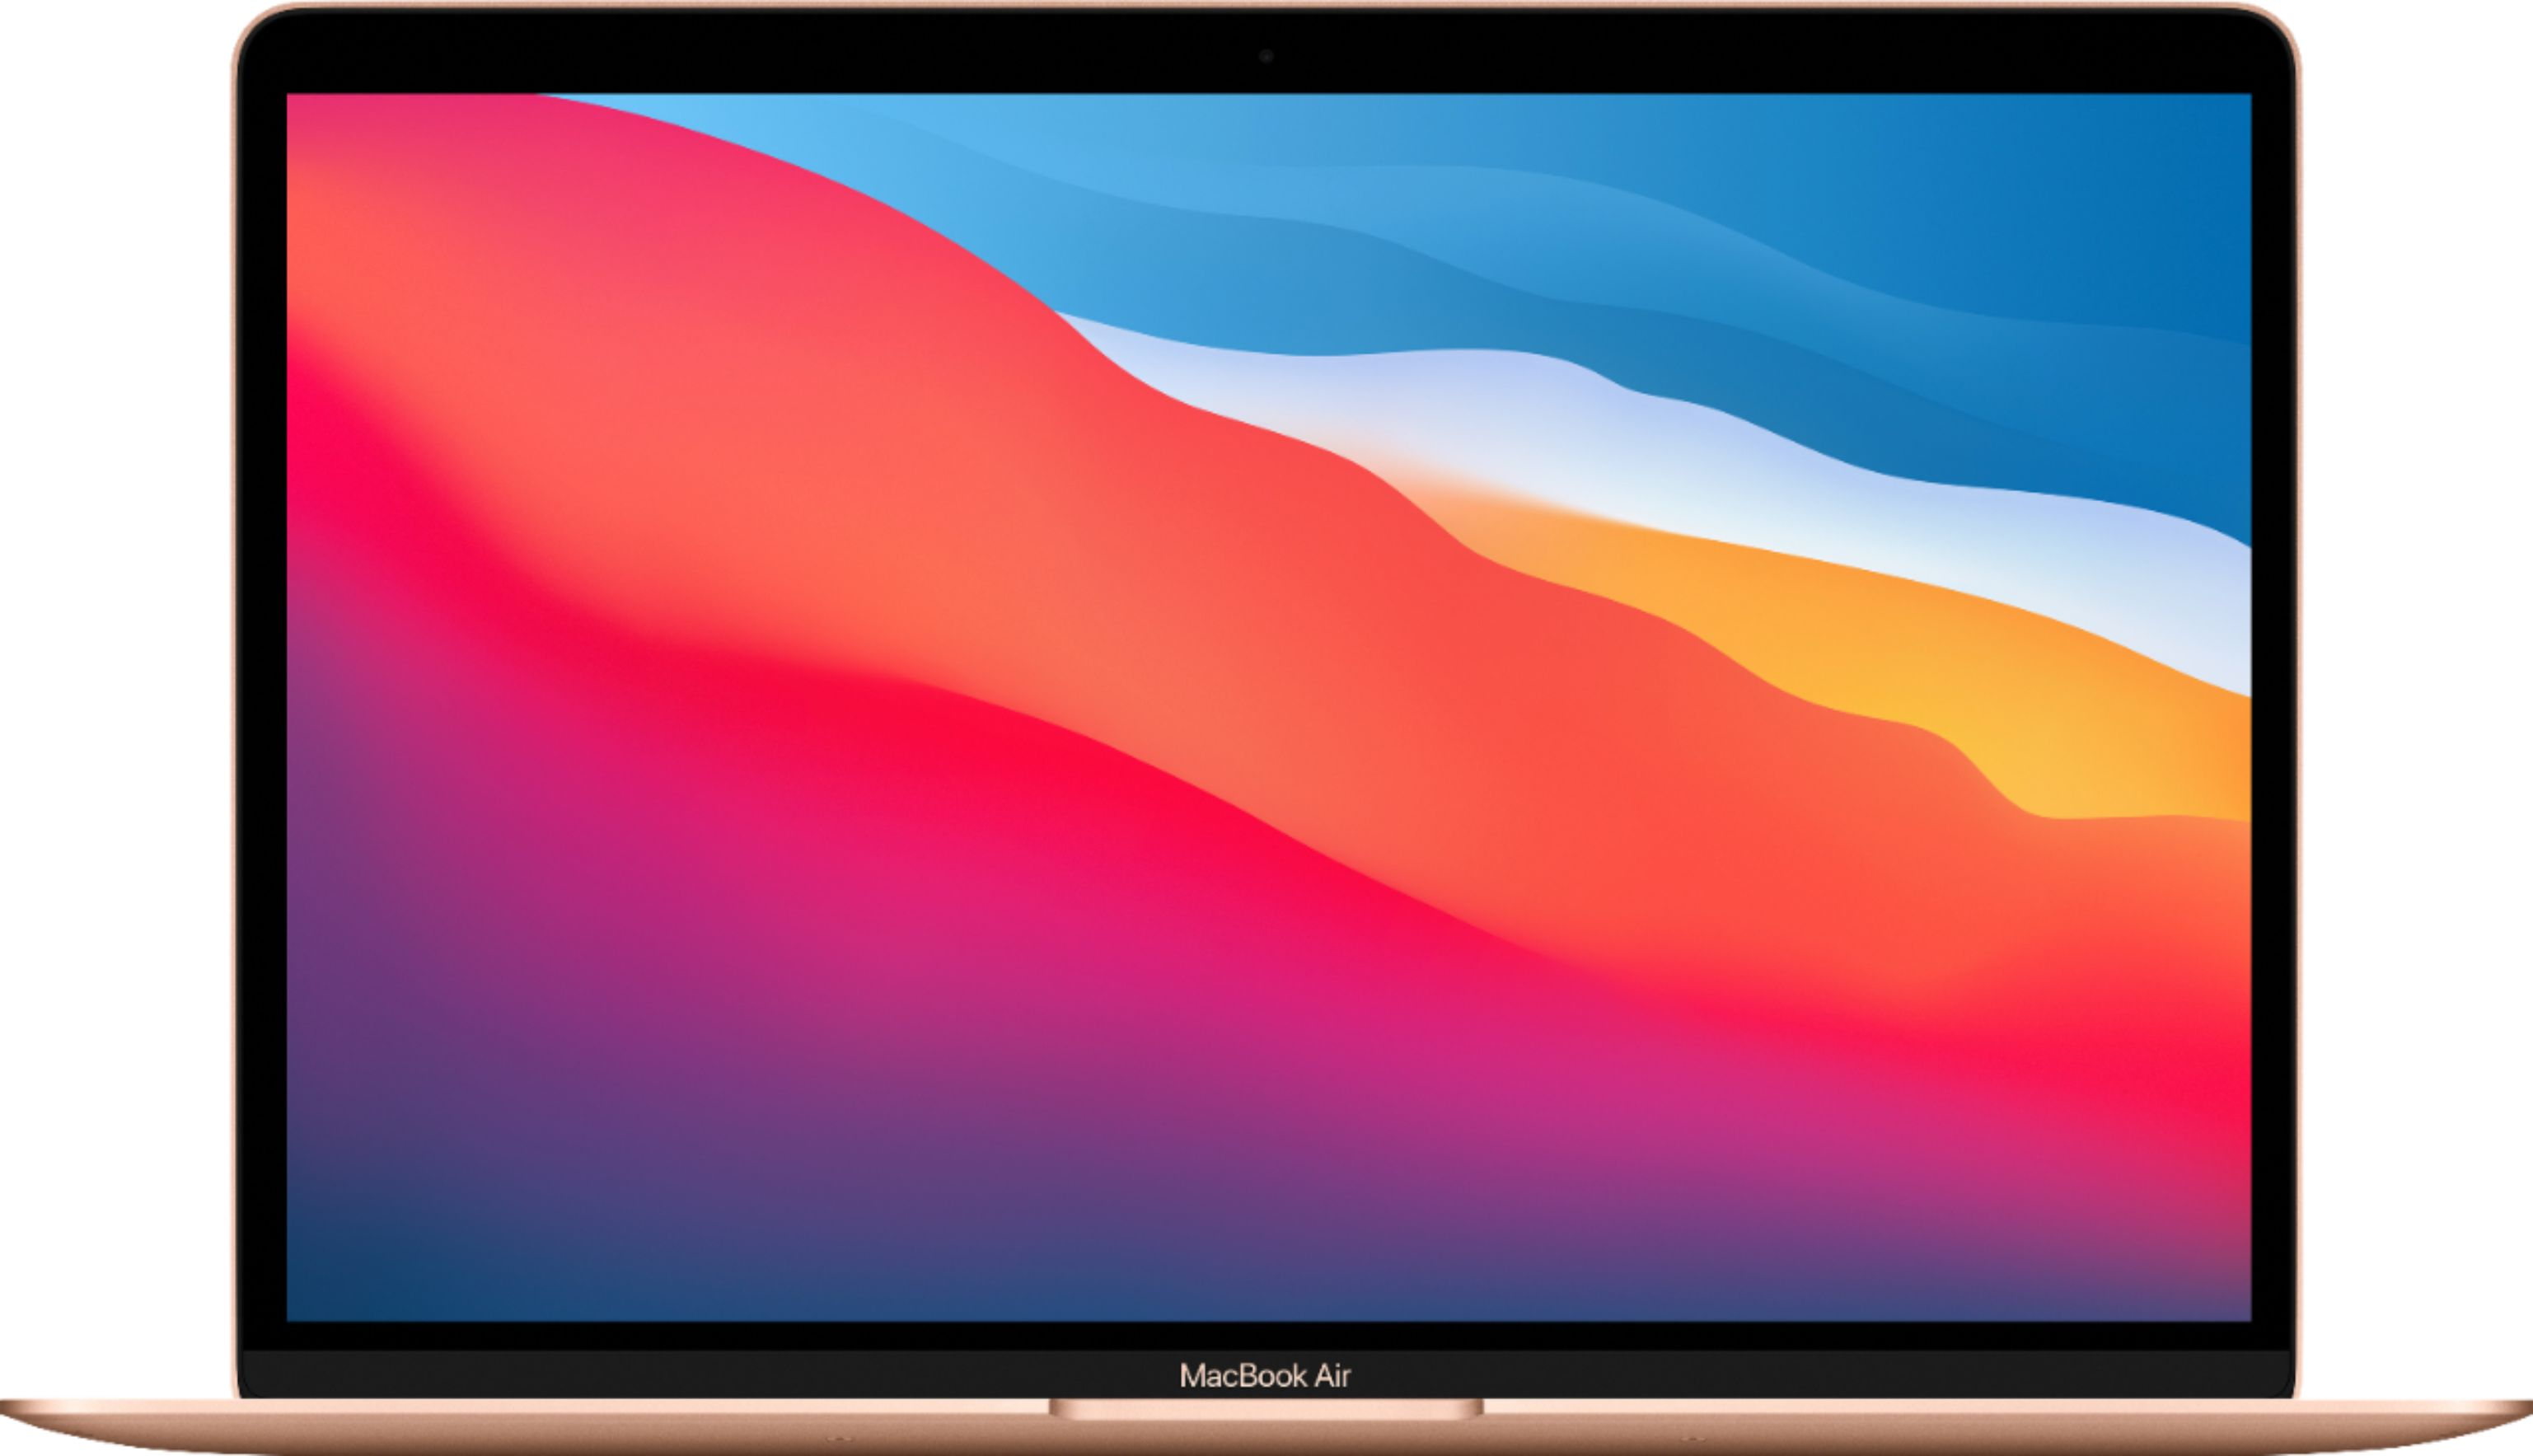 """Front Zoom. MacBook Air 13.3"""" Laptop - Apple M1 chip - 8GB Memory - 256GB SSD (Latest Model) - Gold."""